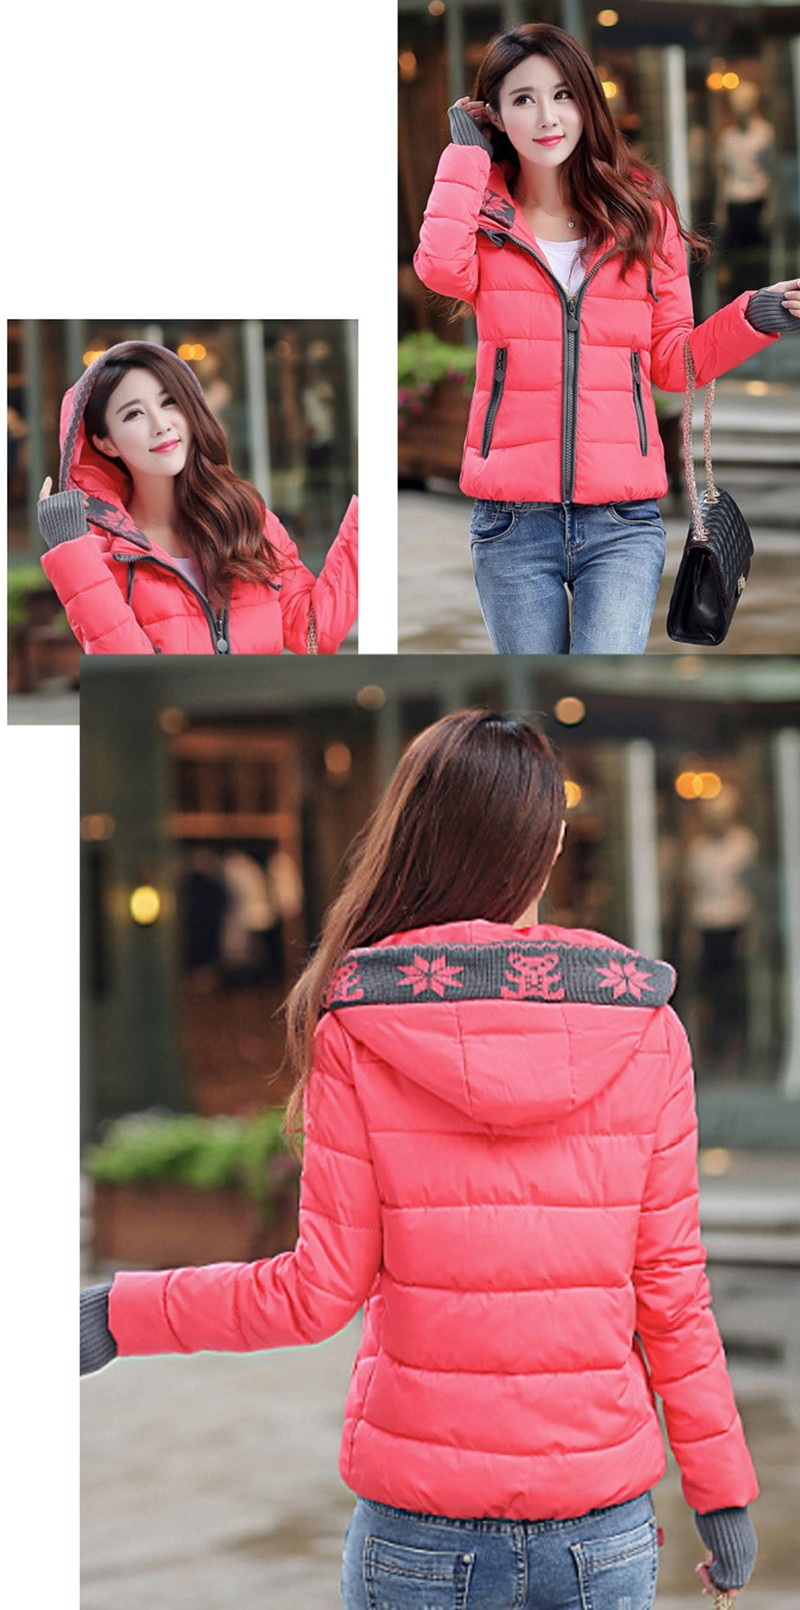 Women Winter Coat Long Sleeve Print Floral Hooded Slim Winter Parka Plus Size Cotton-Padded Jackets 2XL (7)